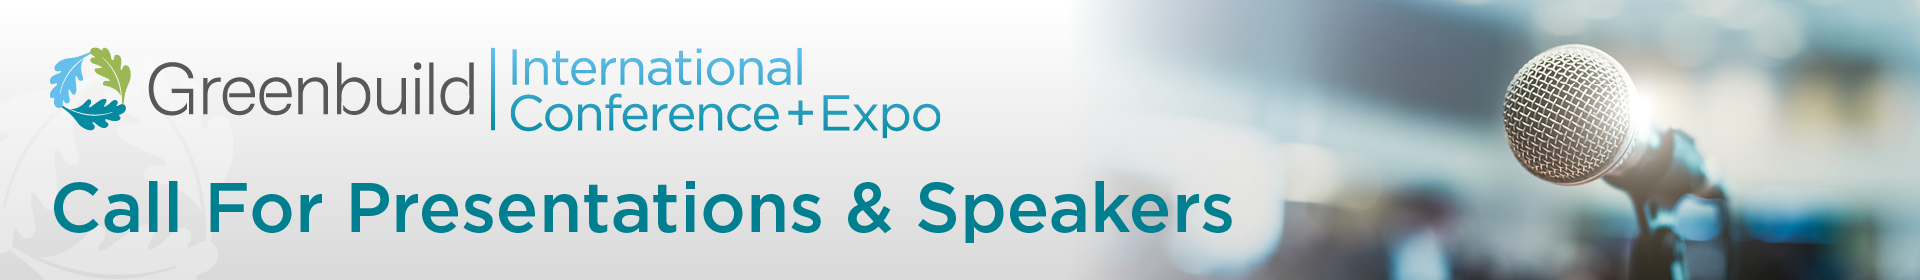 2021 Greenbuild International Conference and Expo Event Banner